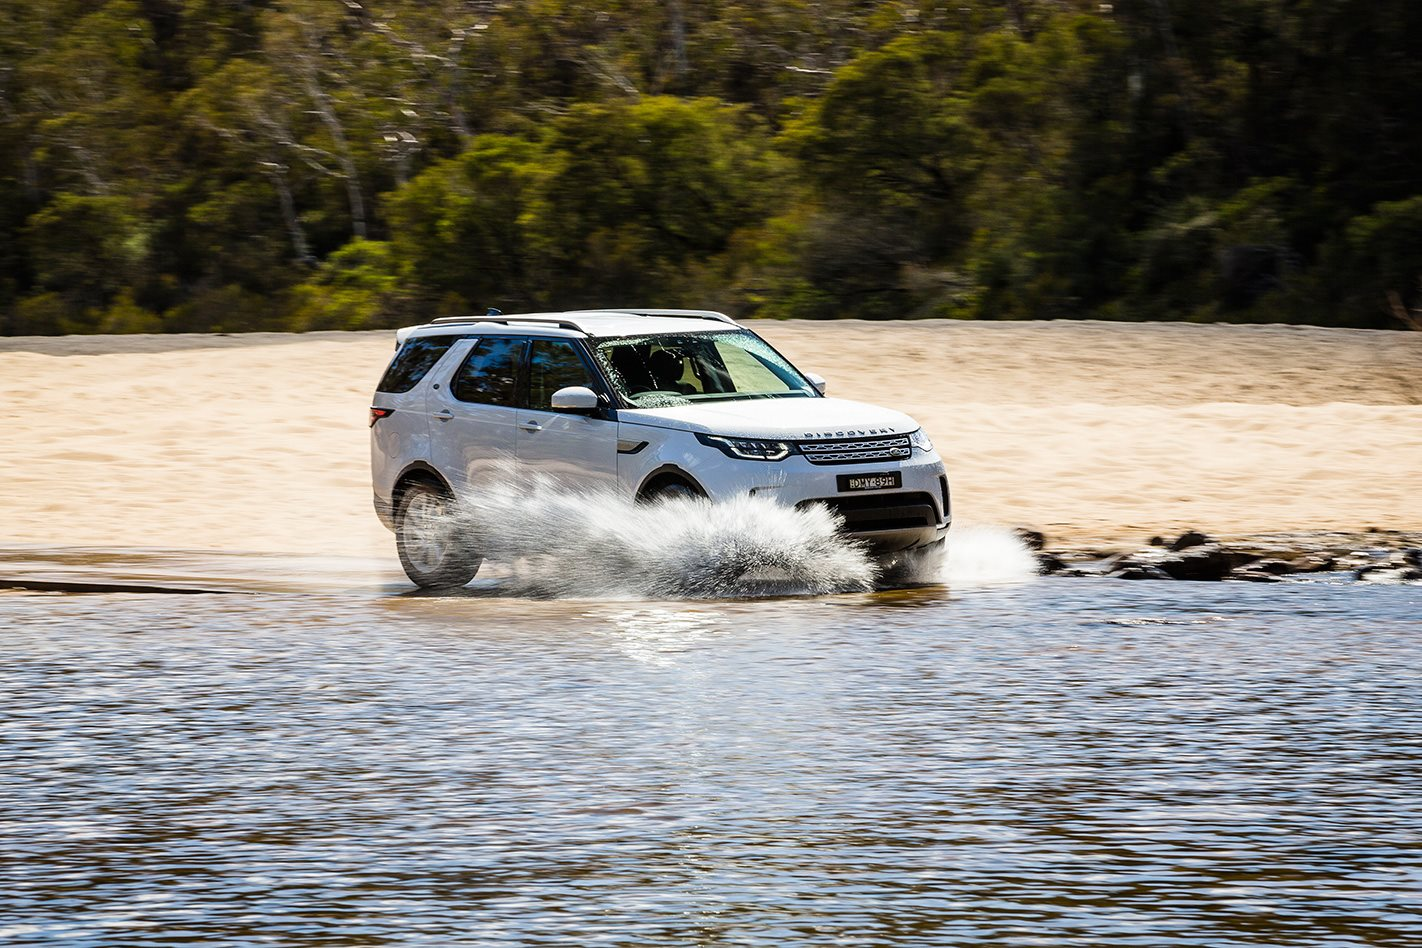 2017 Land Rover Discovery water crossing.jpg